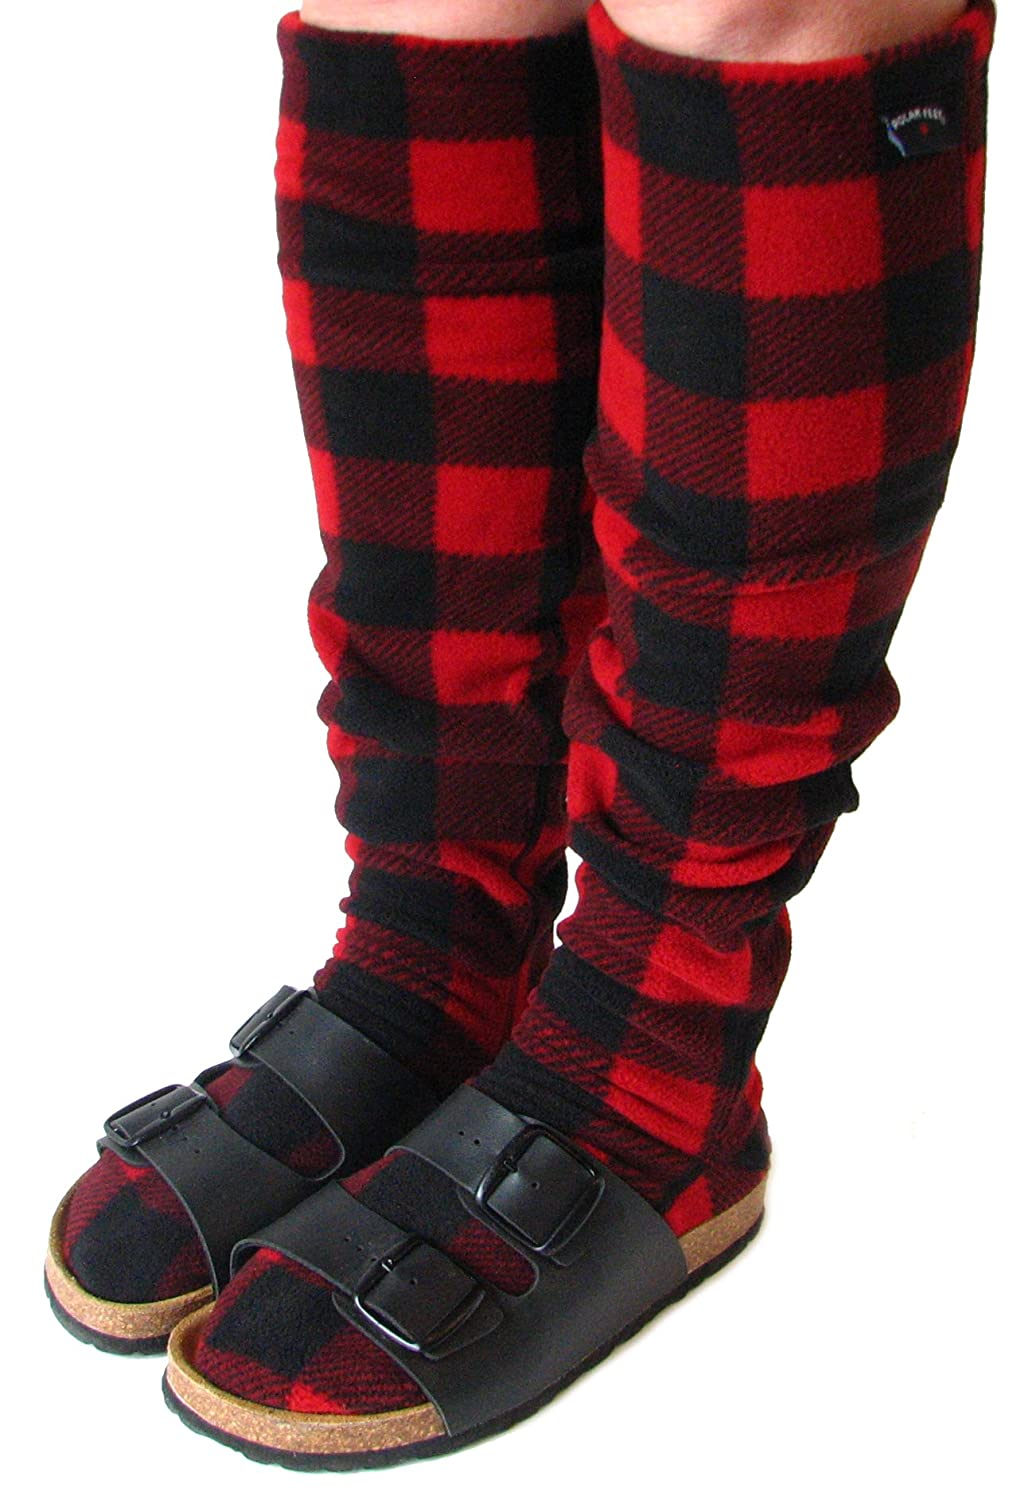 POLAR FEET Knee-High Fleece Socks - Regular Calf